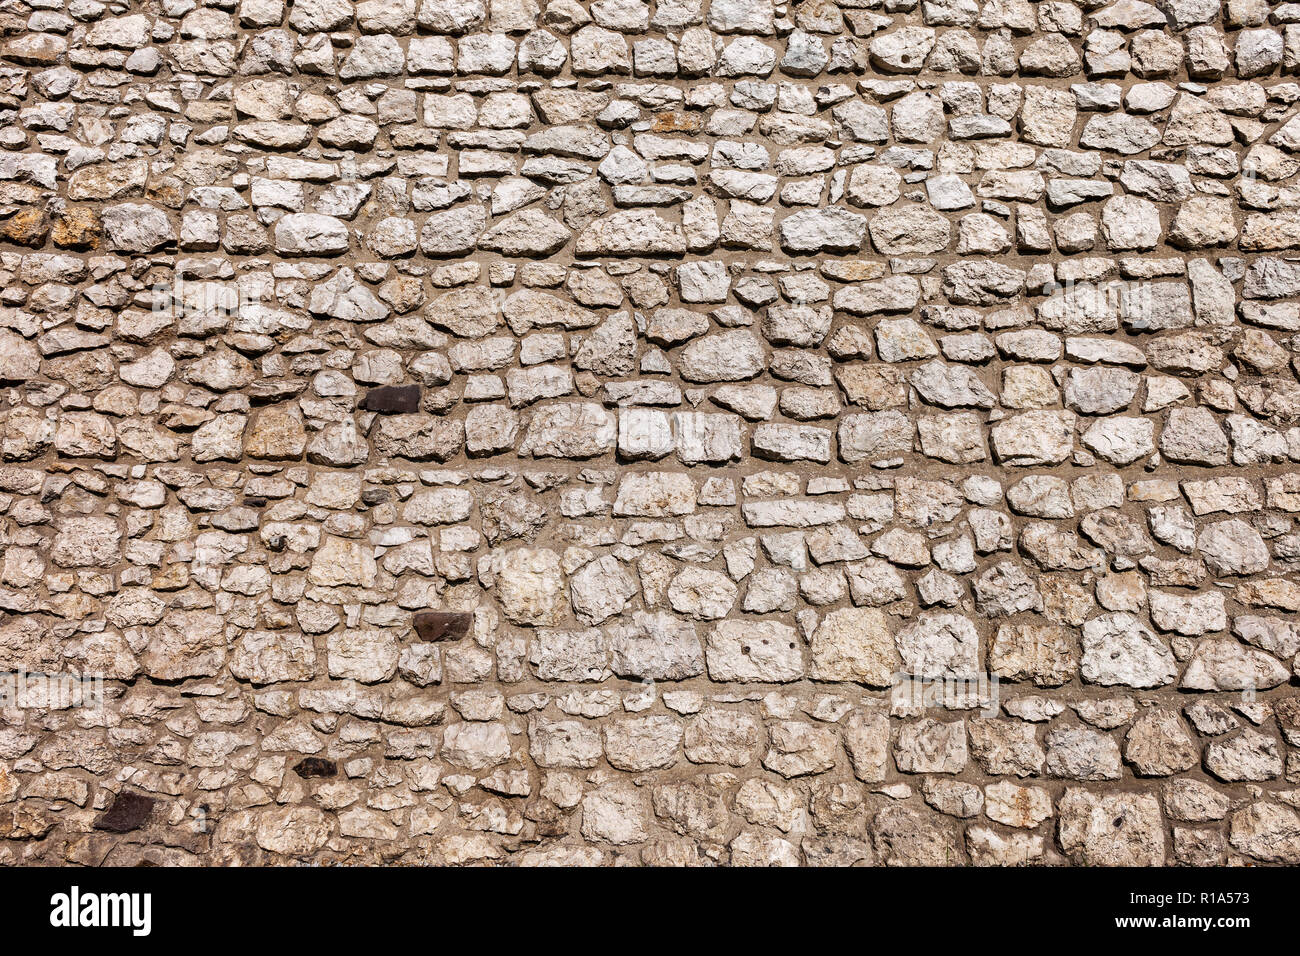 Medieval stone floor texture Pavement Medieval Castle Stone Wall Background Or Texture From Wawel Castle In Krakow Poland Alamy Medieval Stonework Texture Stock Photos Medieval Stonework Texture